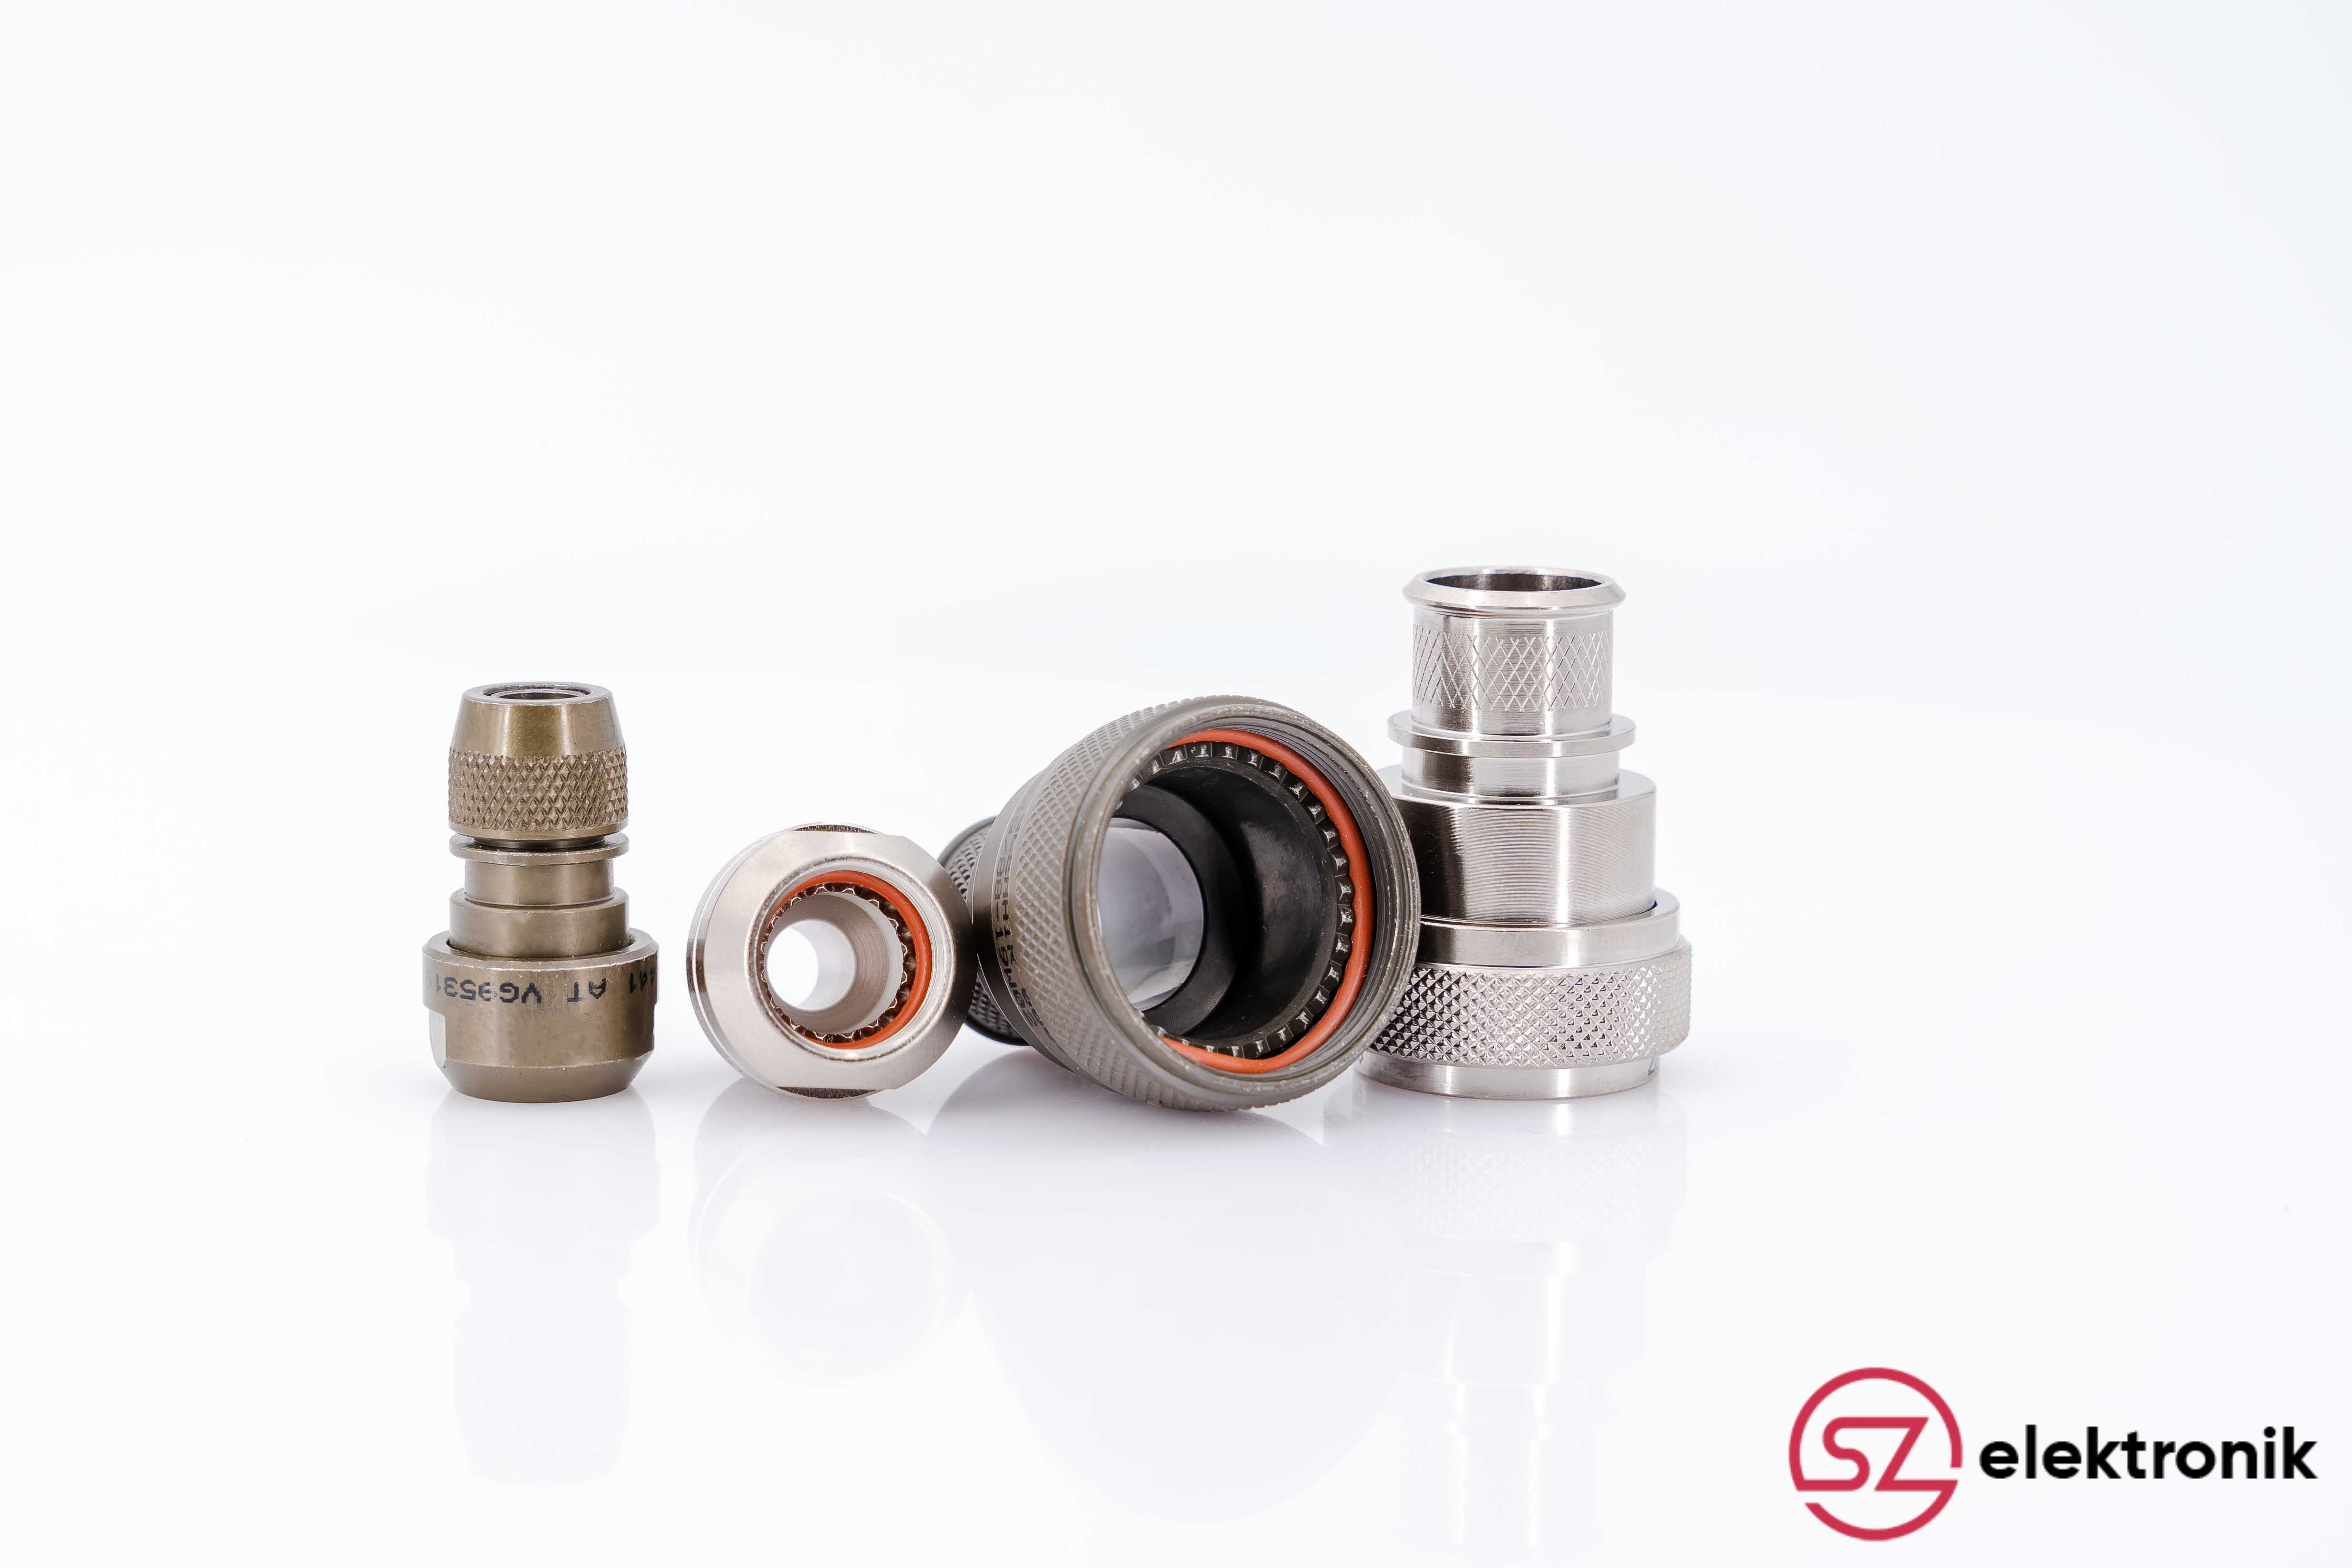 Backshells for MIL-connectors